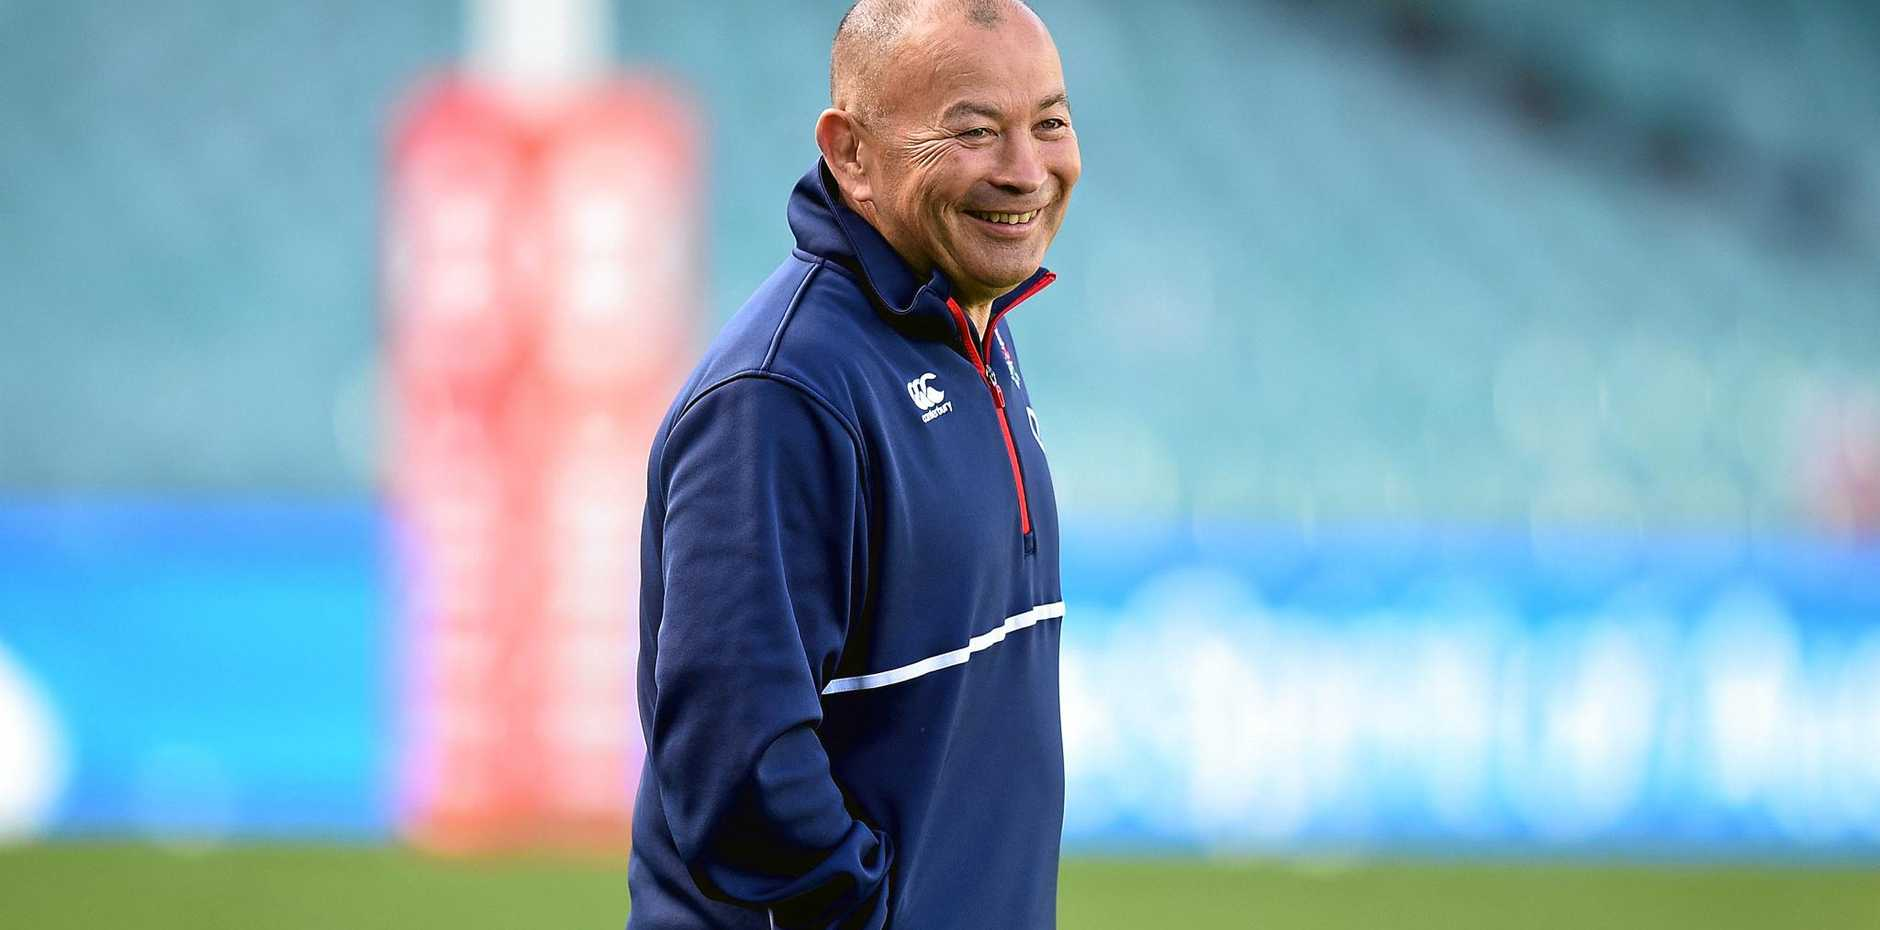 England rugby coach Eddie Jones is all smiles at a training run.